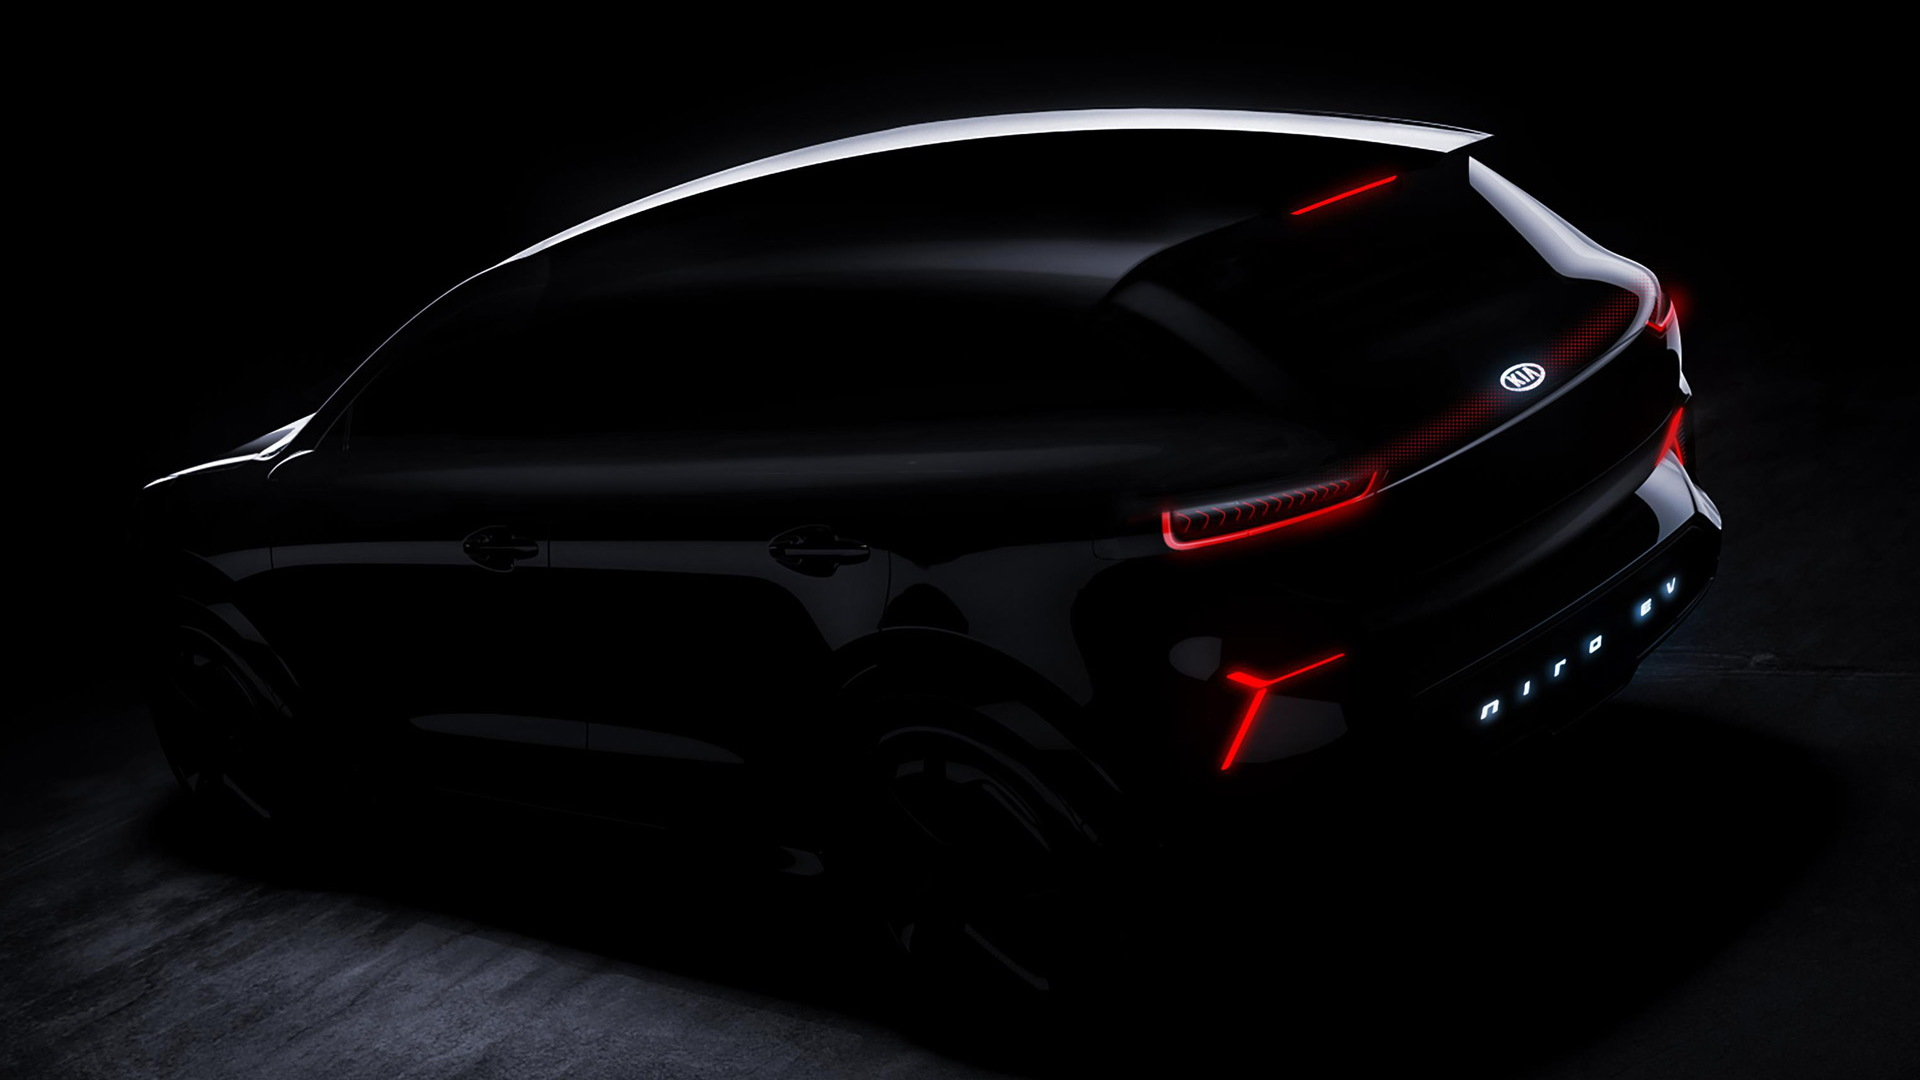 Teaser for Kia Niro EV concept debuting at 2018 Consumer Electronics Show